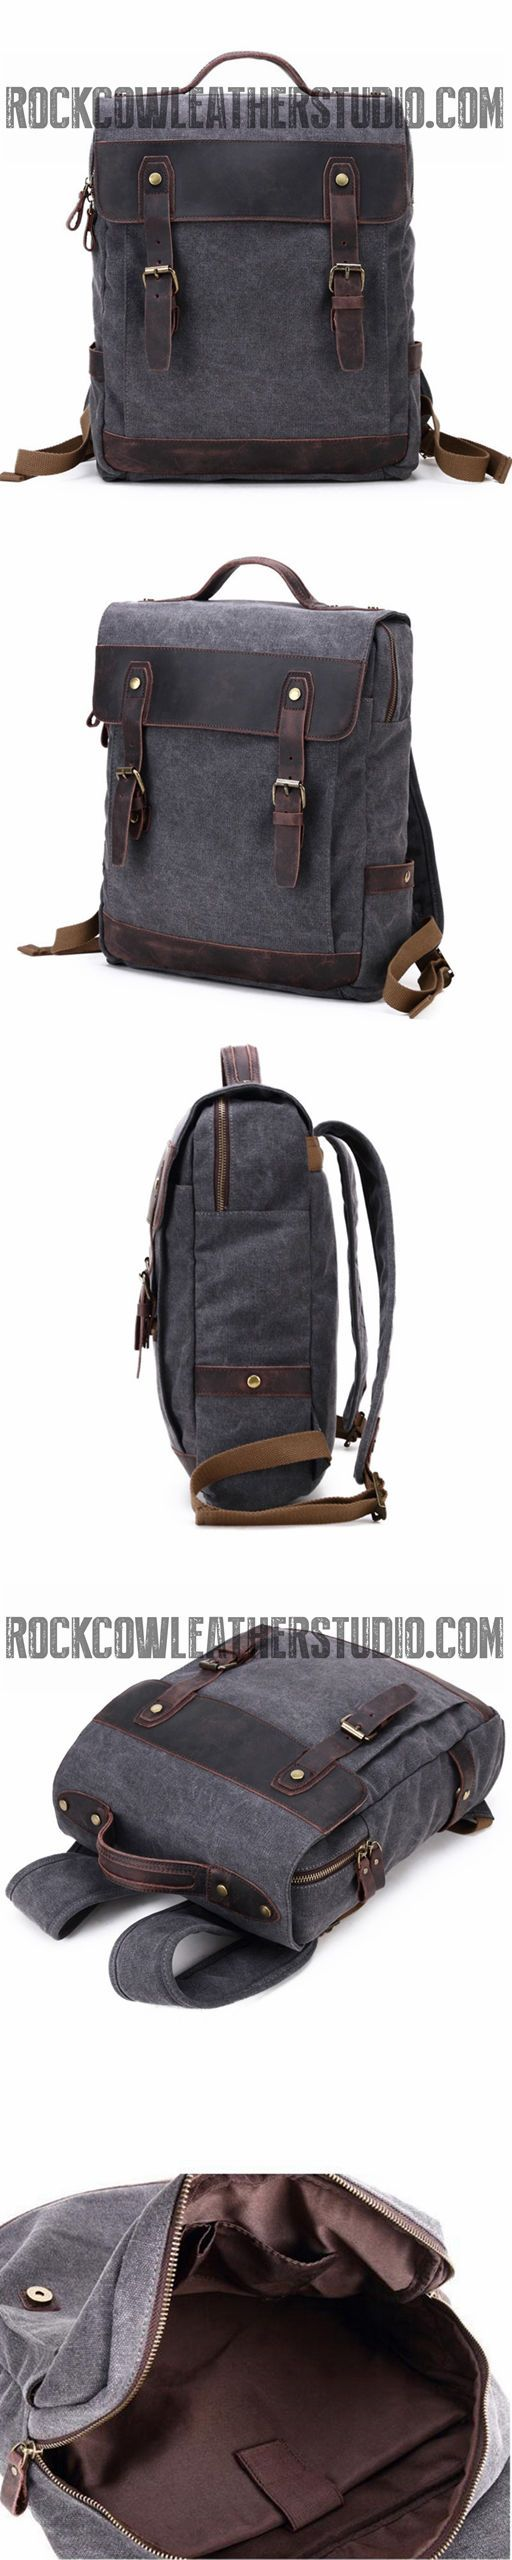 Waxed Canvas School Backpack, Casual Daily Backpack, Hiking Bag FX064